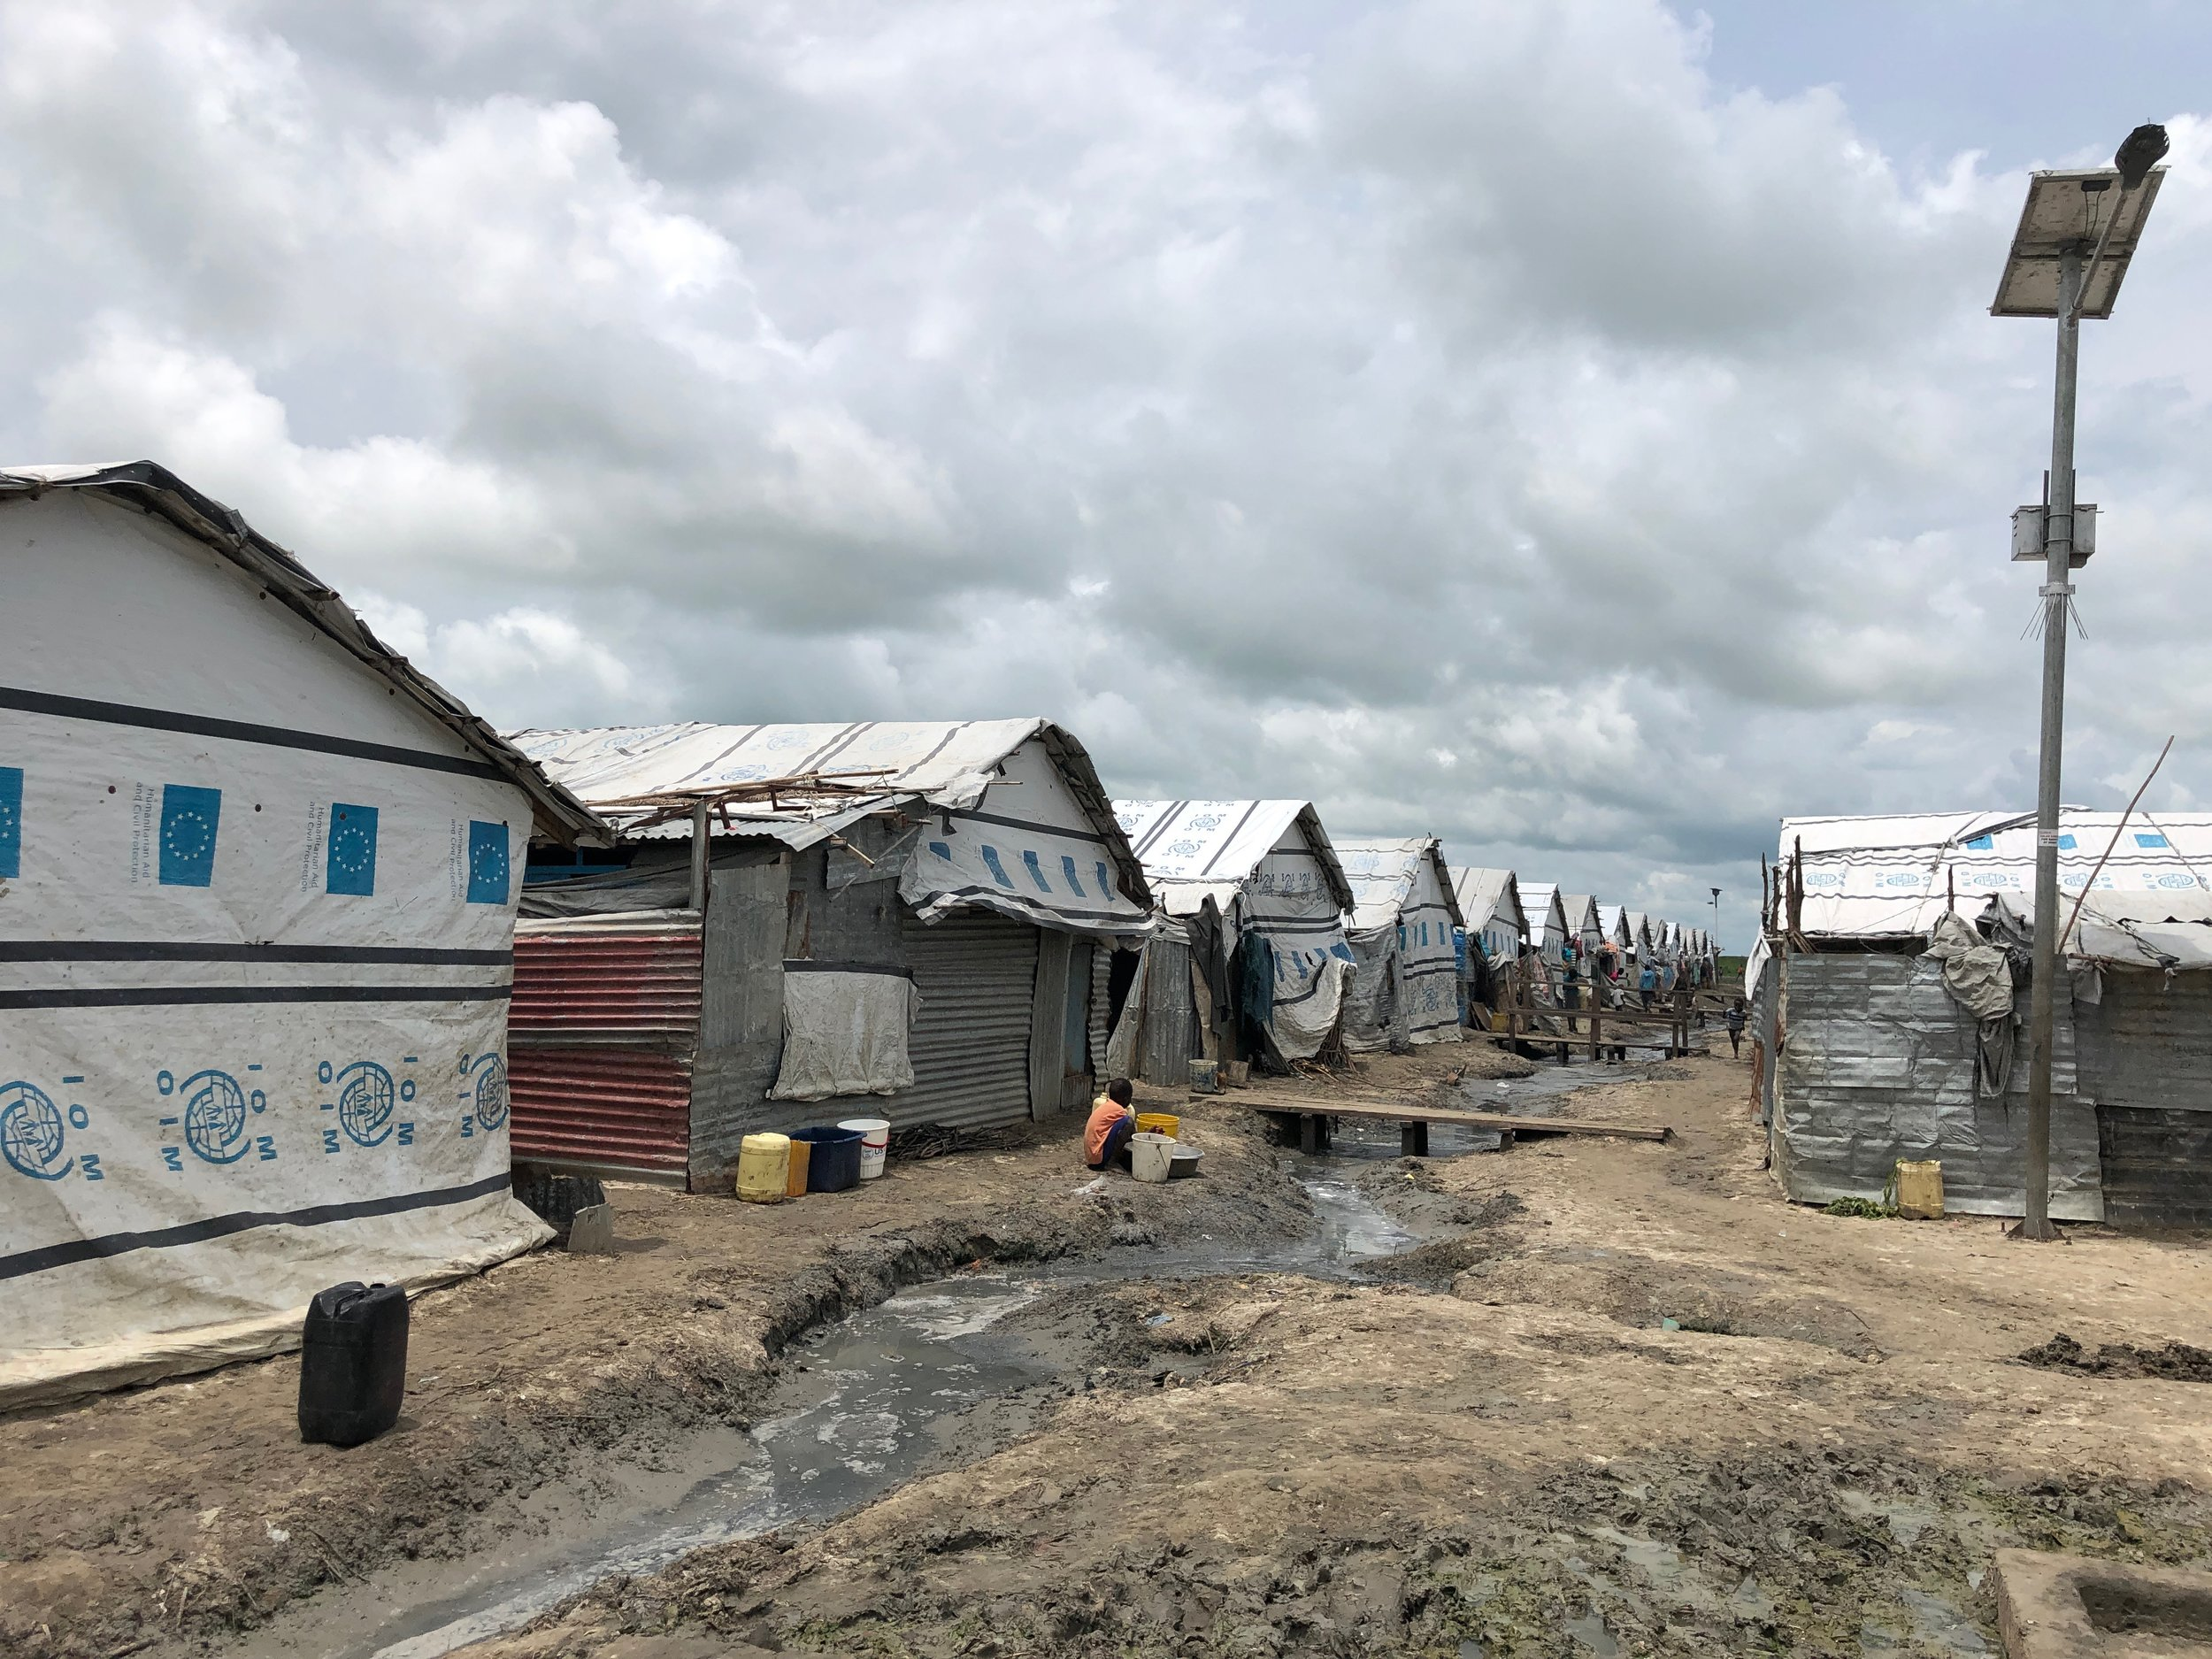 Although there are some services within the Malakal POC, the conditions are still challenging. Sanitation is a problem and when heavy rains come, people have to wade over raw sewage